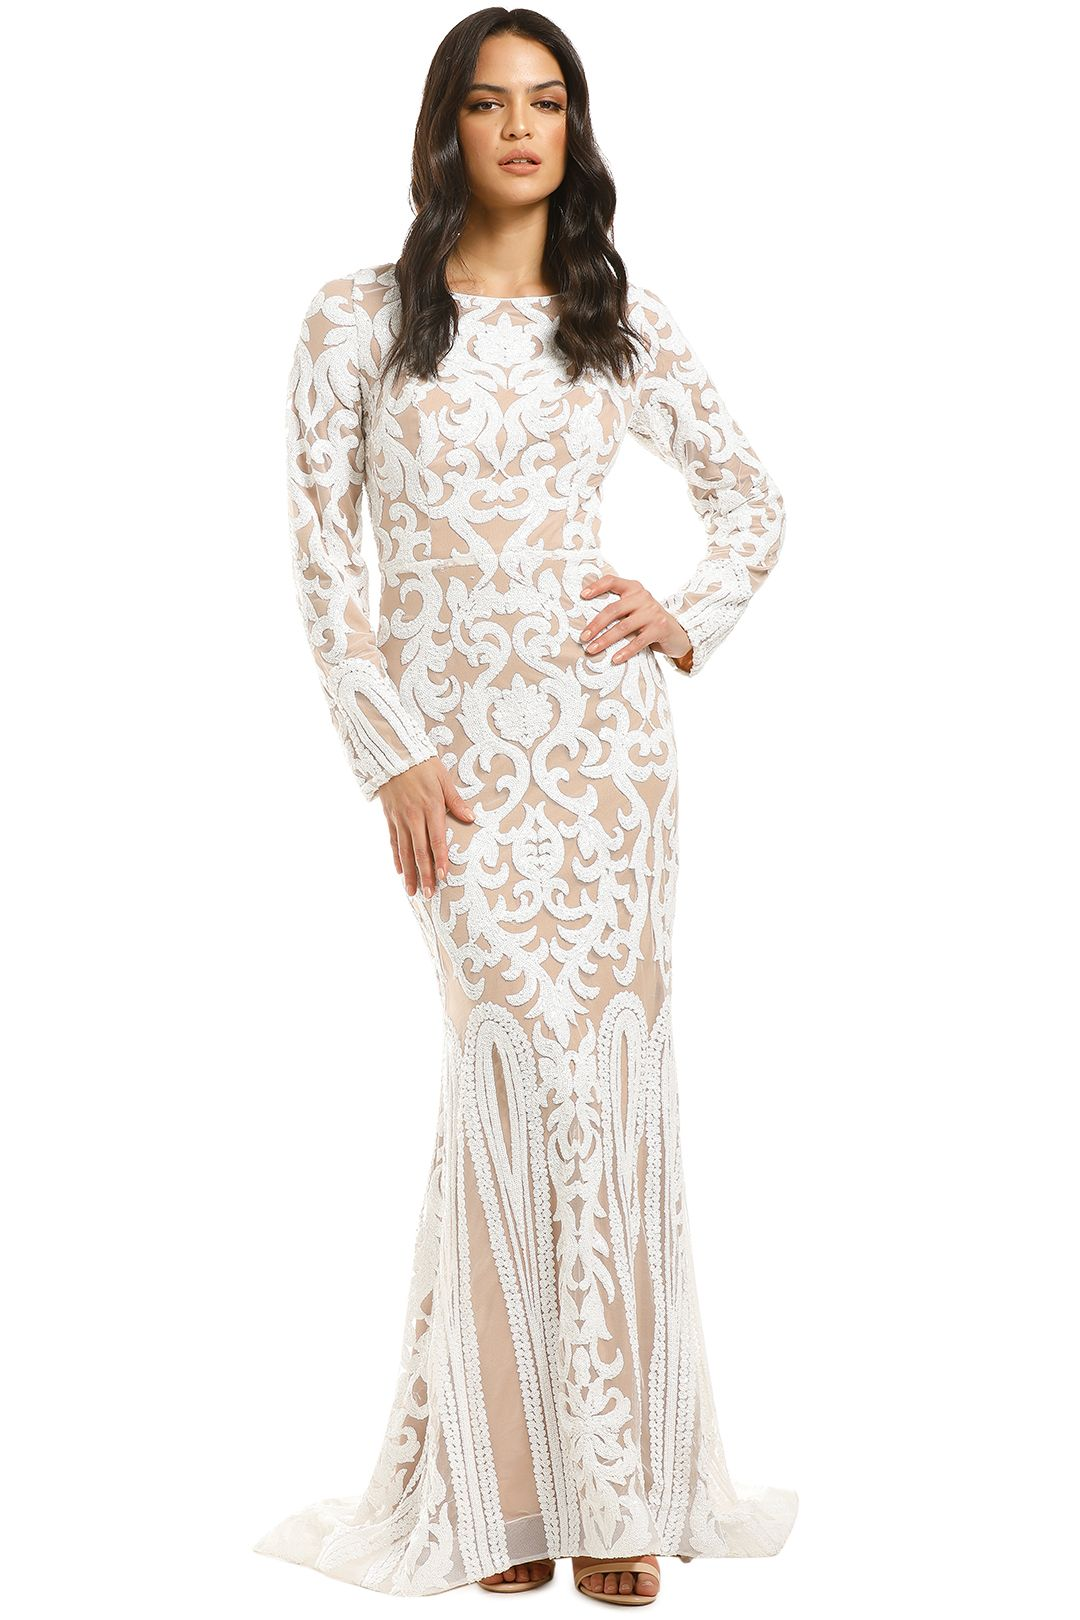 Tinaholy-Scoop-Long-Sleeve-Gown-White-Nude-Front